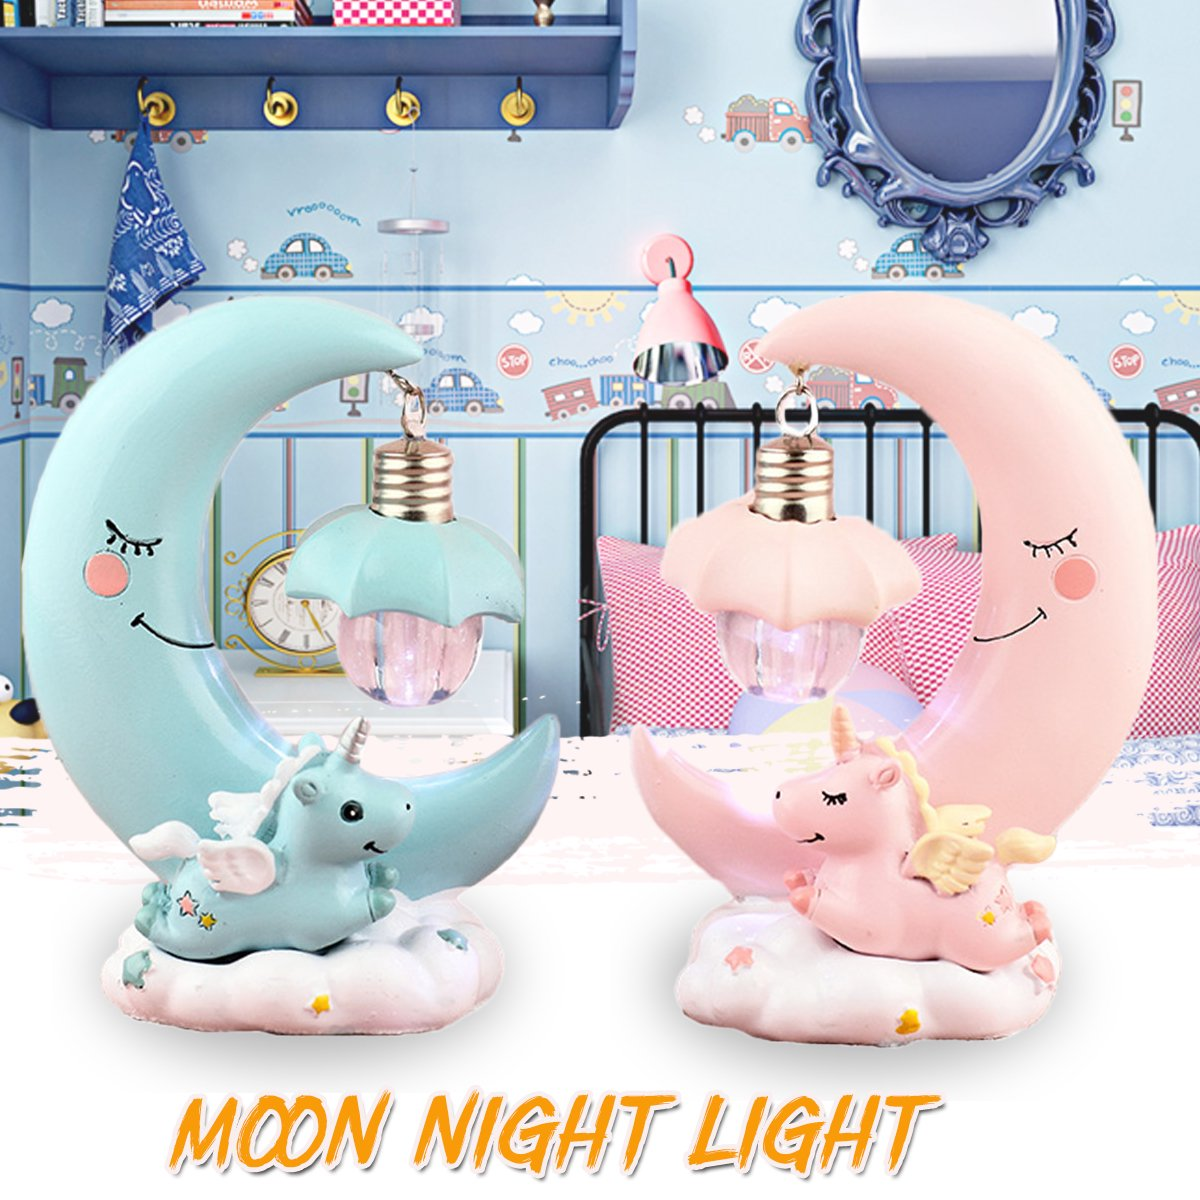 3d Resin Led Moonlight Night Light Bedroom Bed Romantic Kids Girl Gift Decor Kids Bedroom Walmart Canada